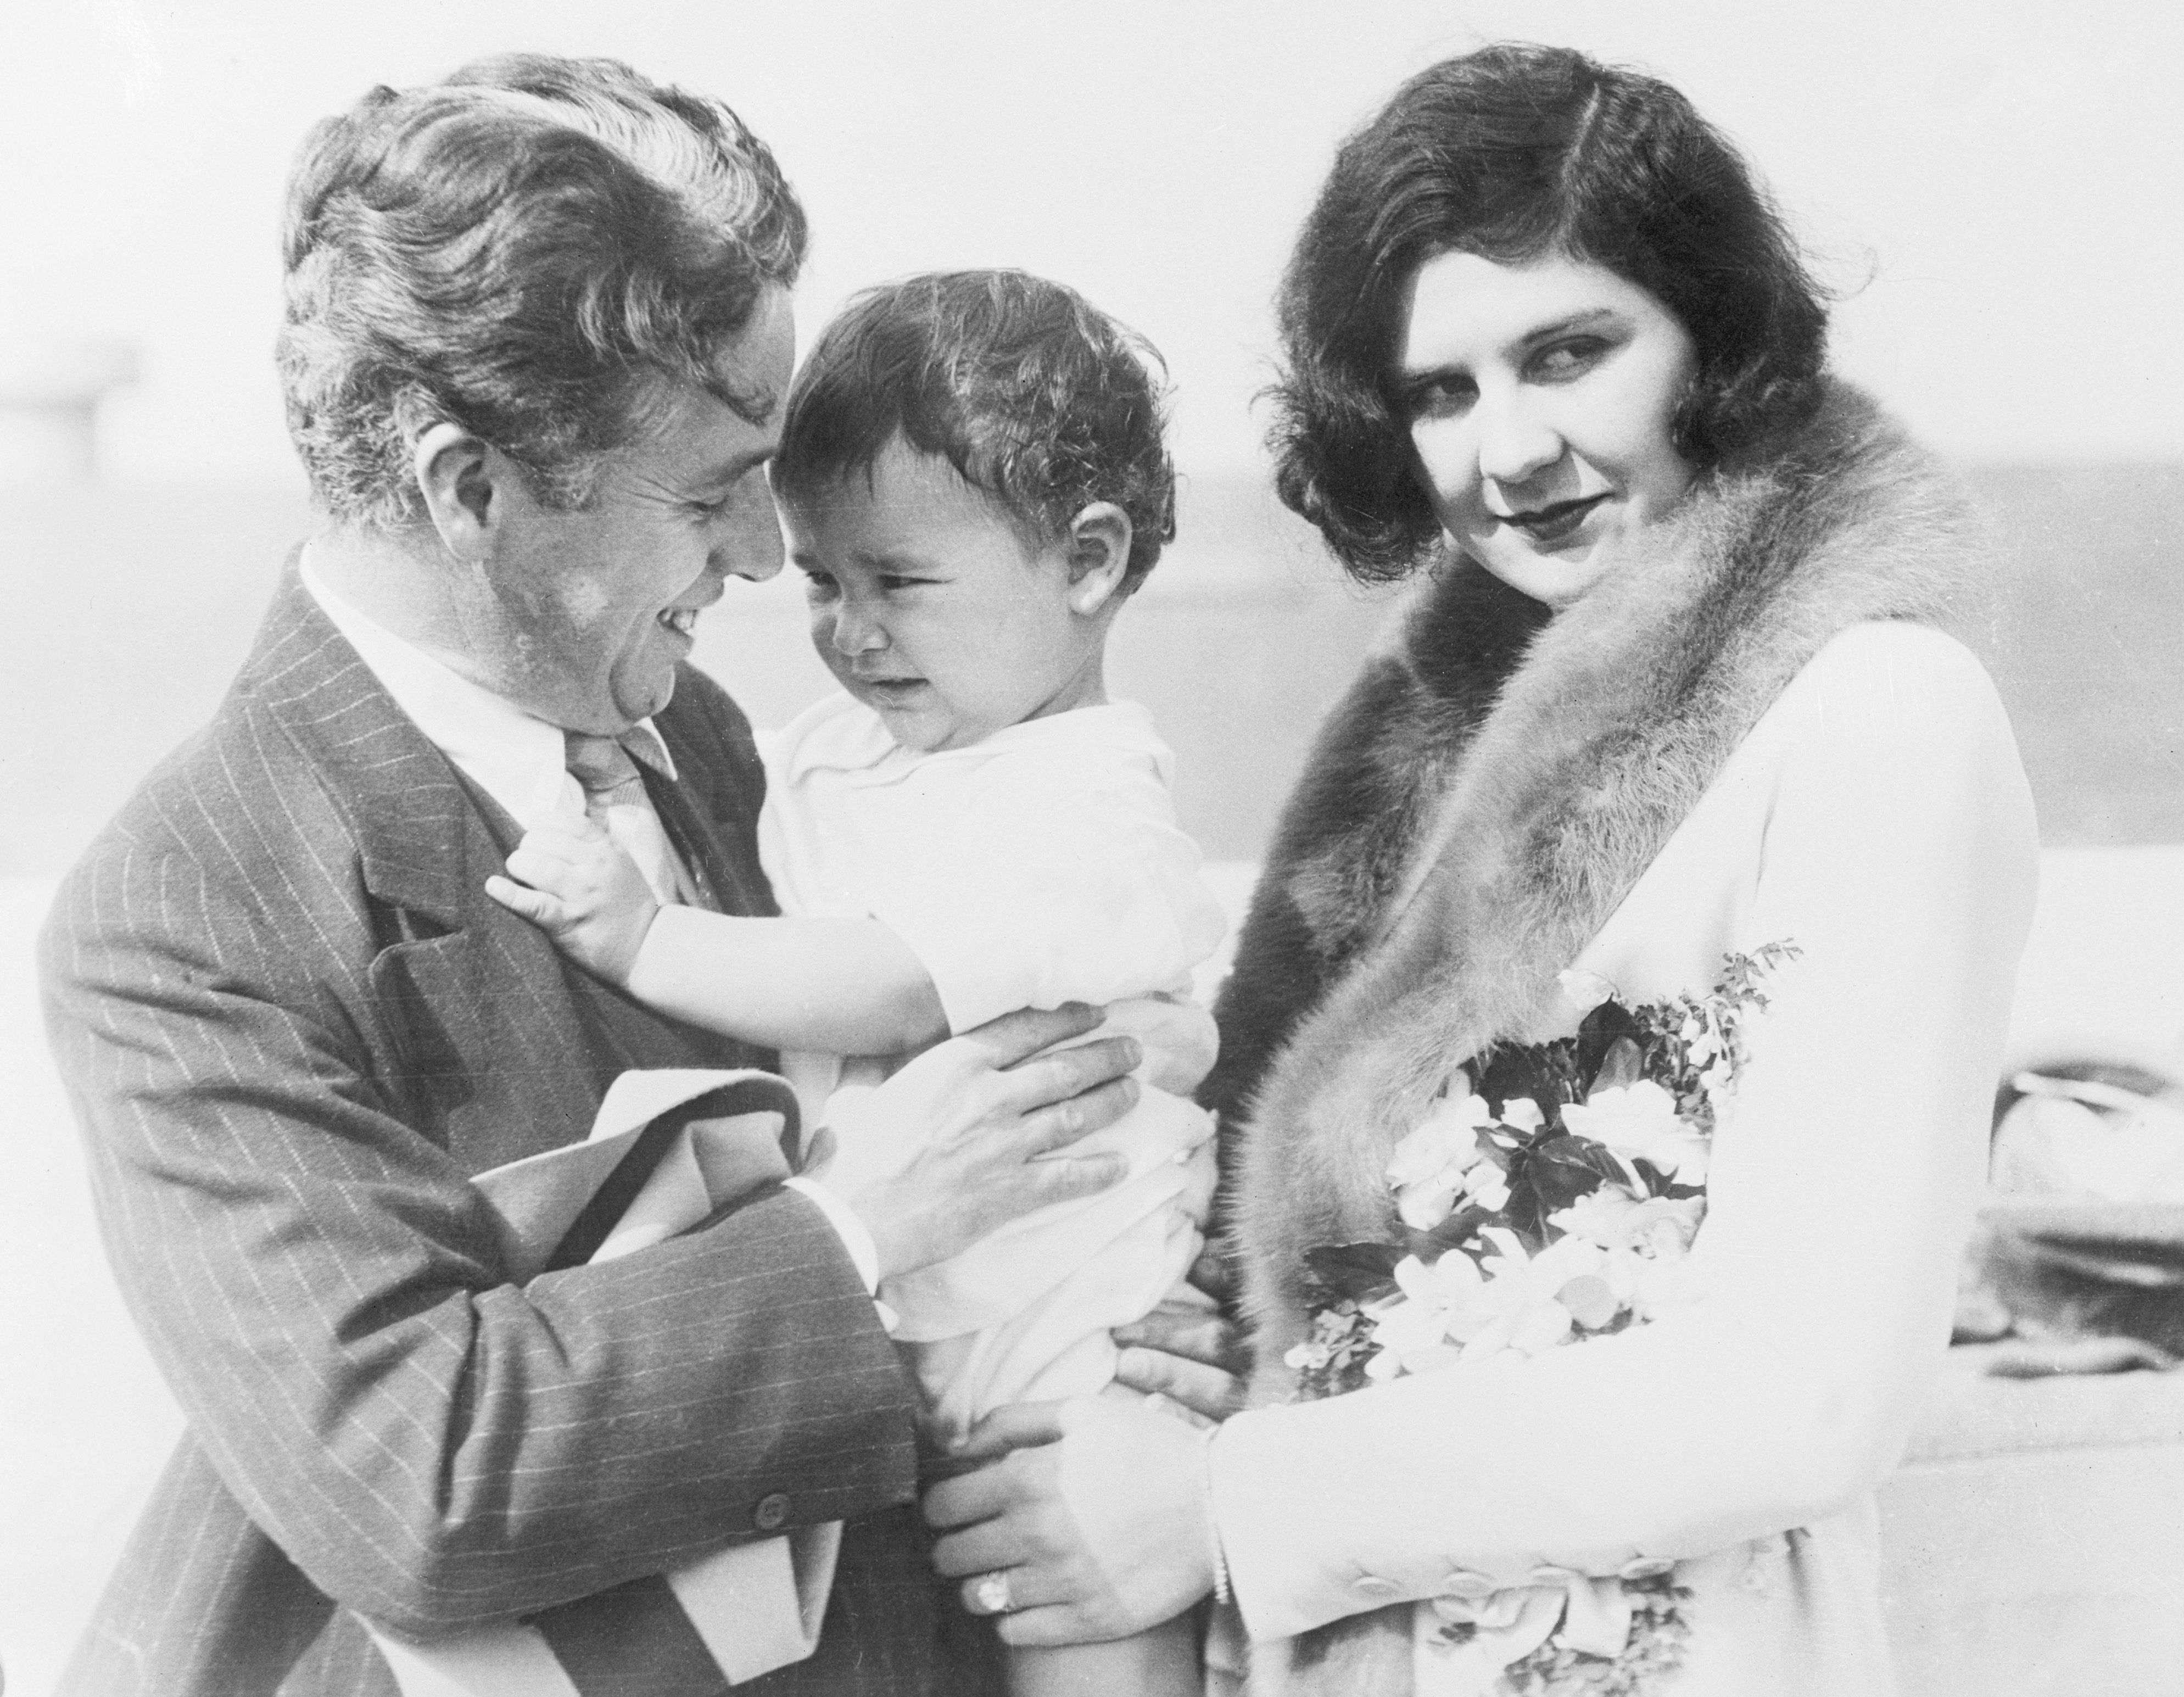 Charlie Chaplin, Lita Grey and their baby son, Charles Jr. on board the SS City of Los Angeles in November 1926  | Photo: GettyImages